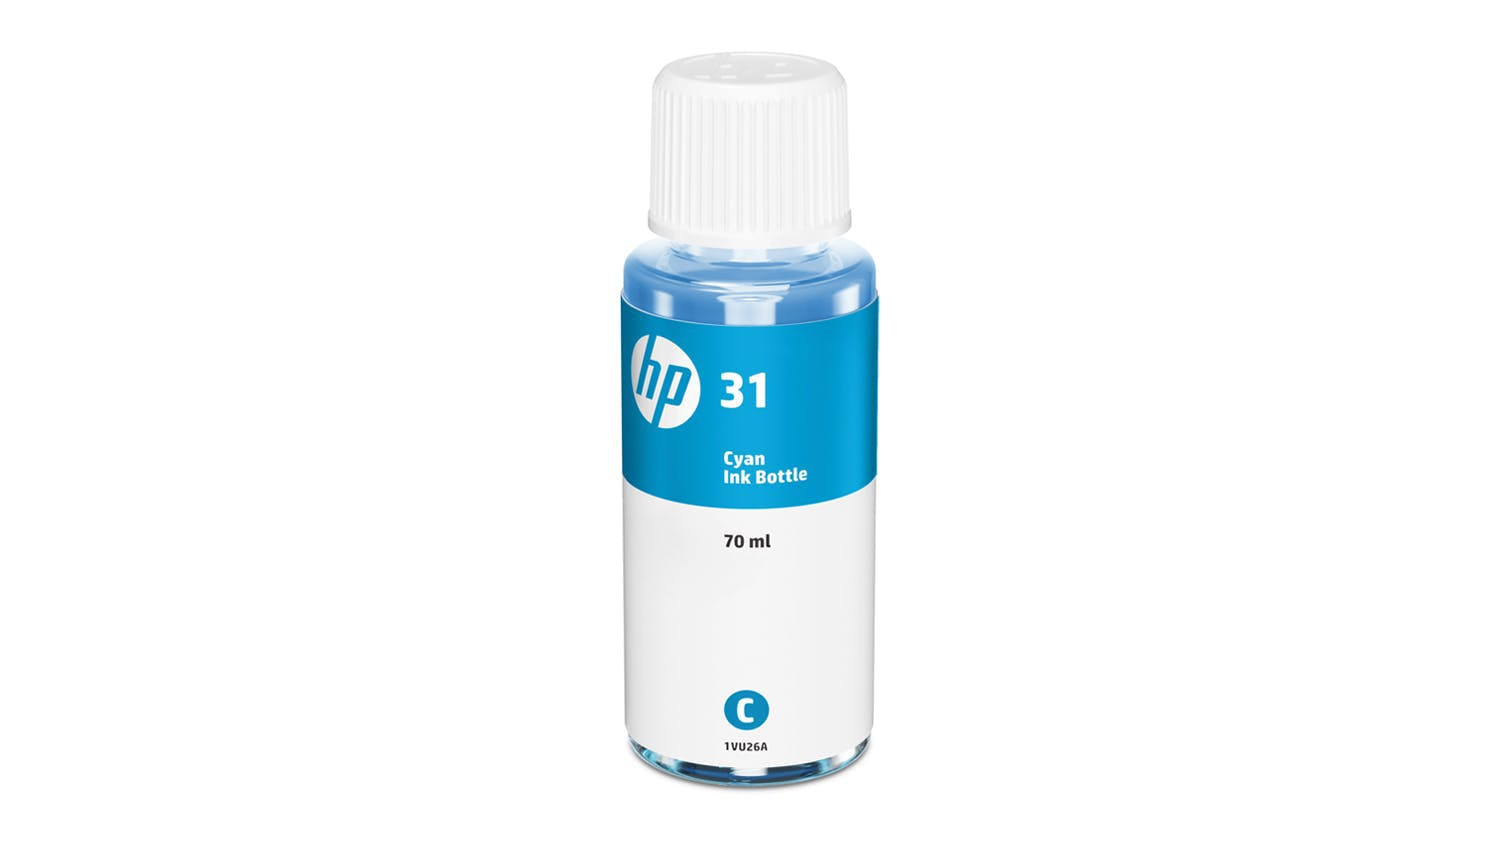 HP 31 70ml Original Ink Bottle Cyan